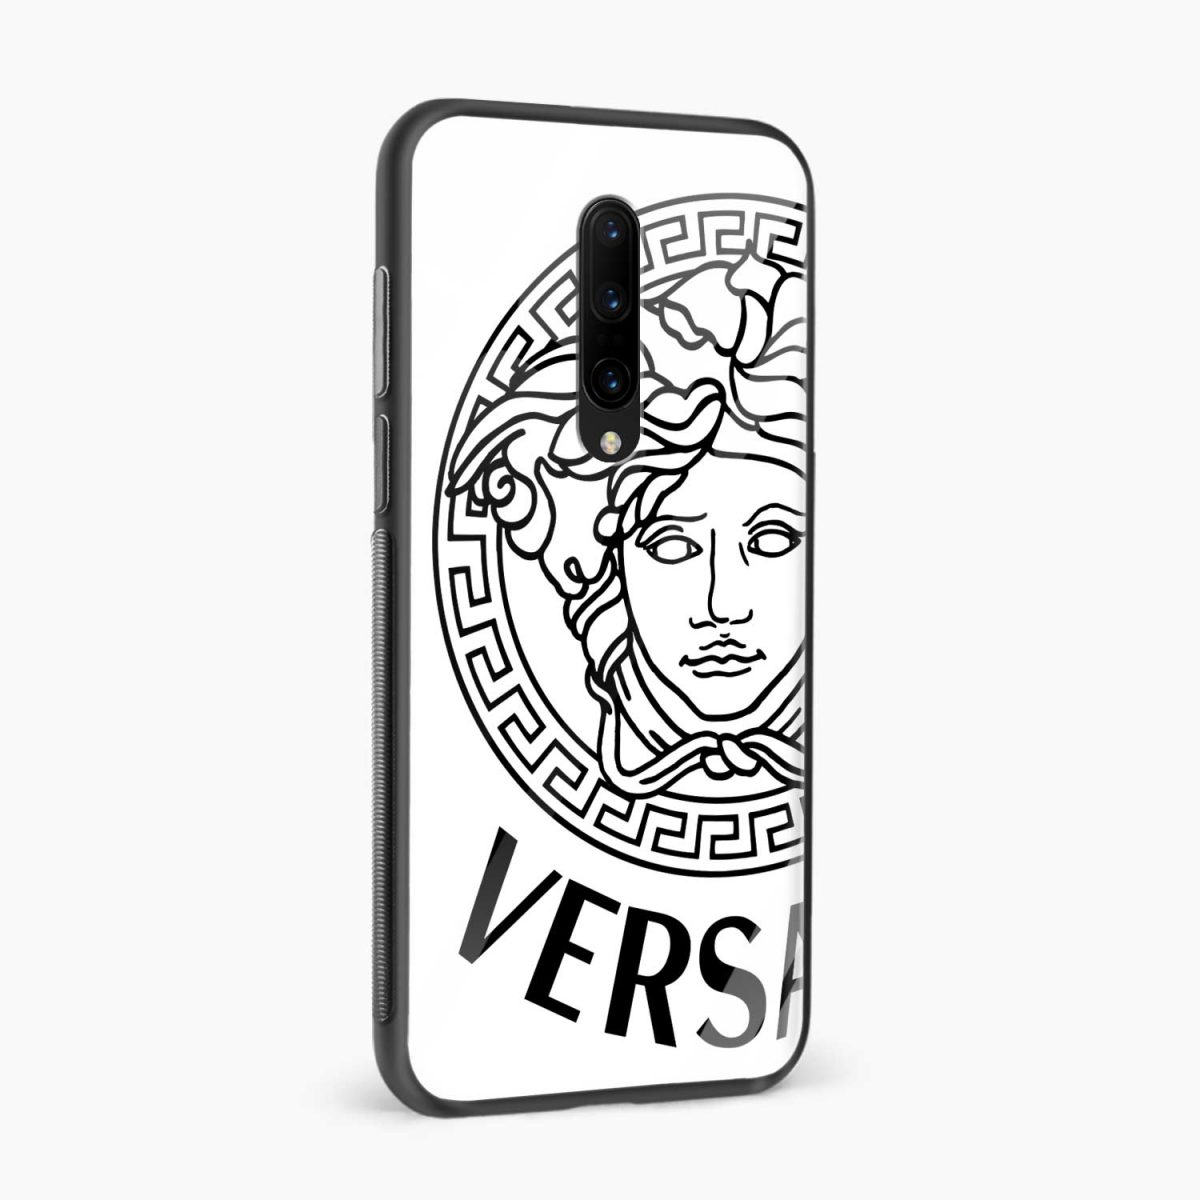 versace black white side view oneplus 7 pro back cover